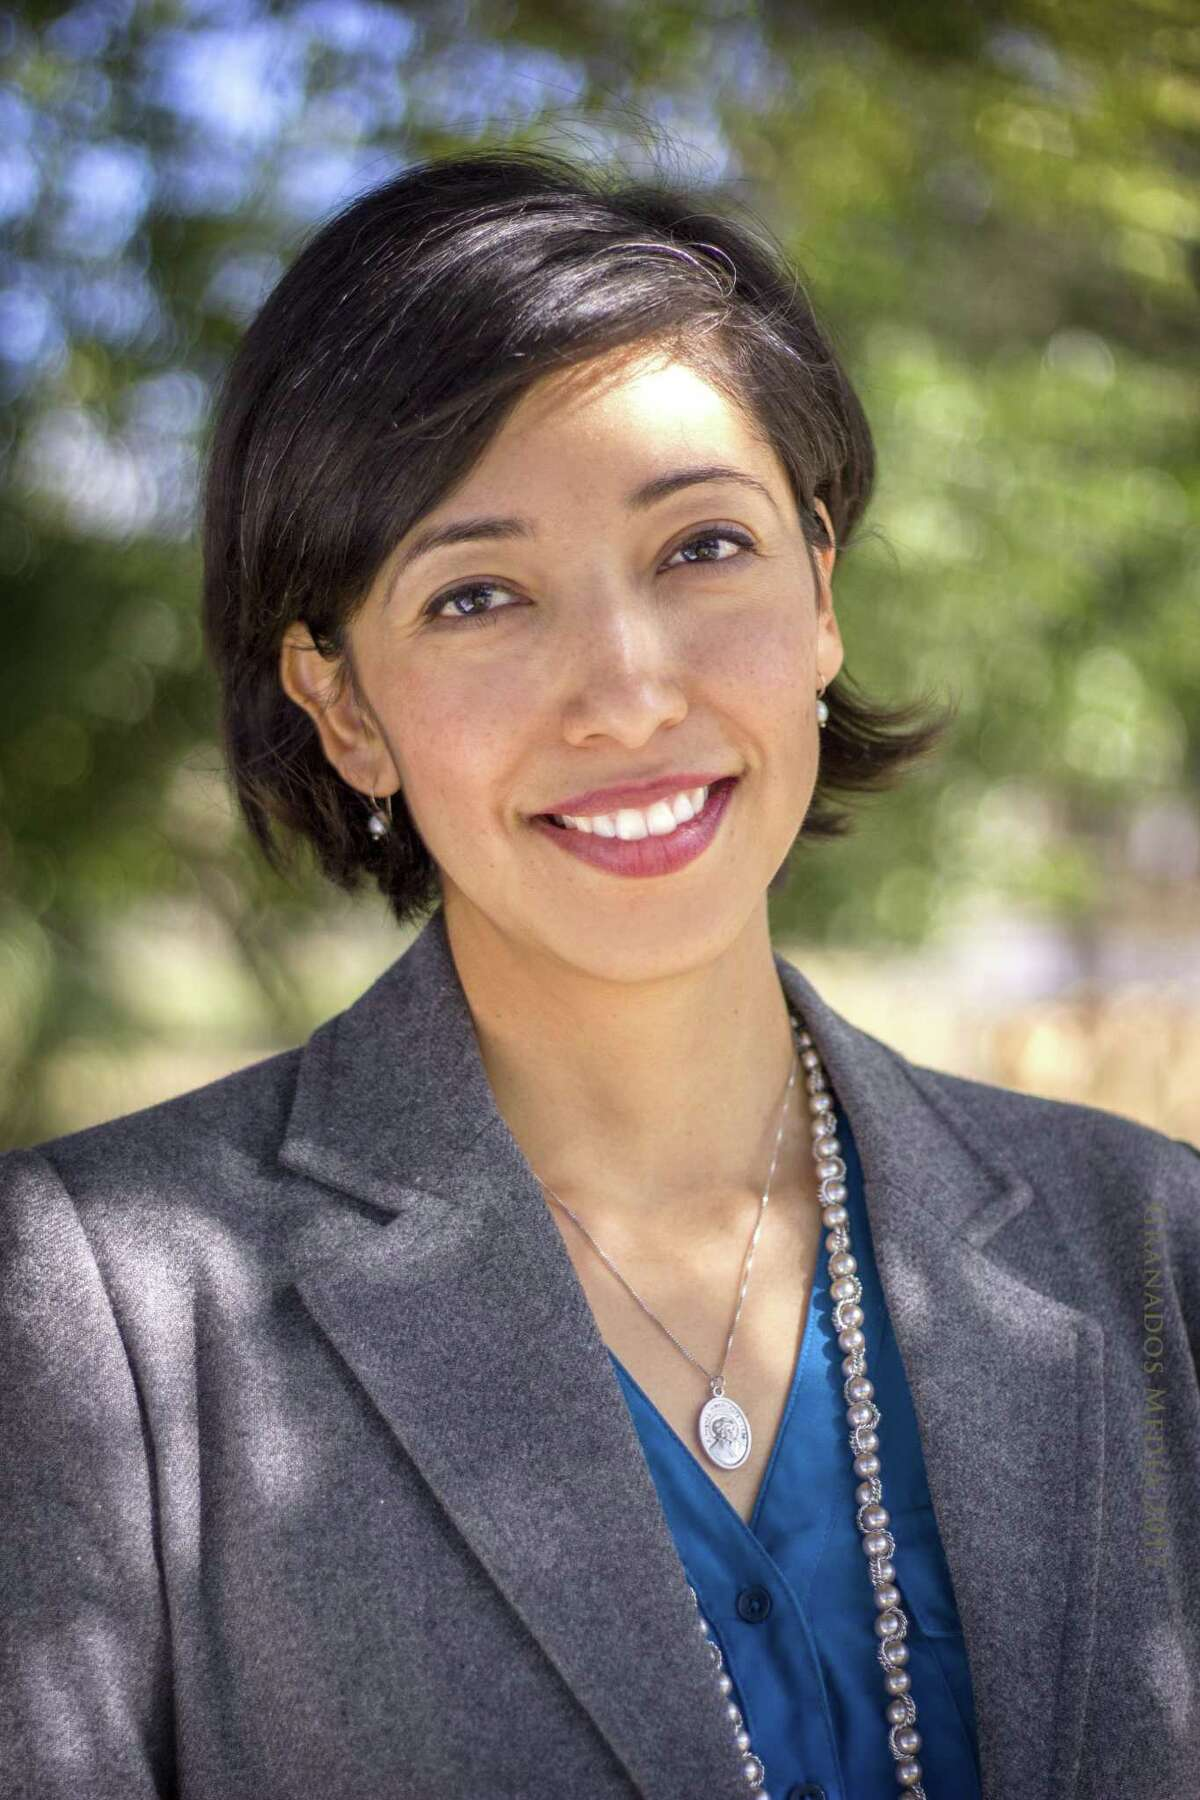 San Antonio City Councilwoman Ana Sandoval, who leads the council's Community Health and Equity Committee, said she is hopeful that the new climate action and adaptation plan will result in inititatives that make sense for businesses and consumers and protect the environment.